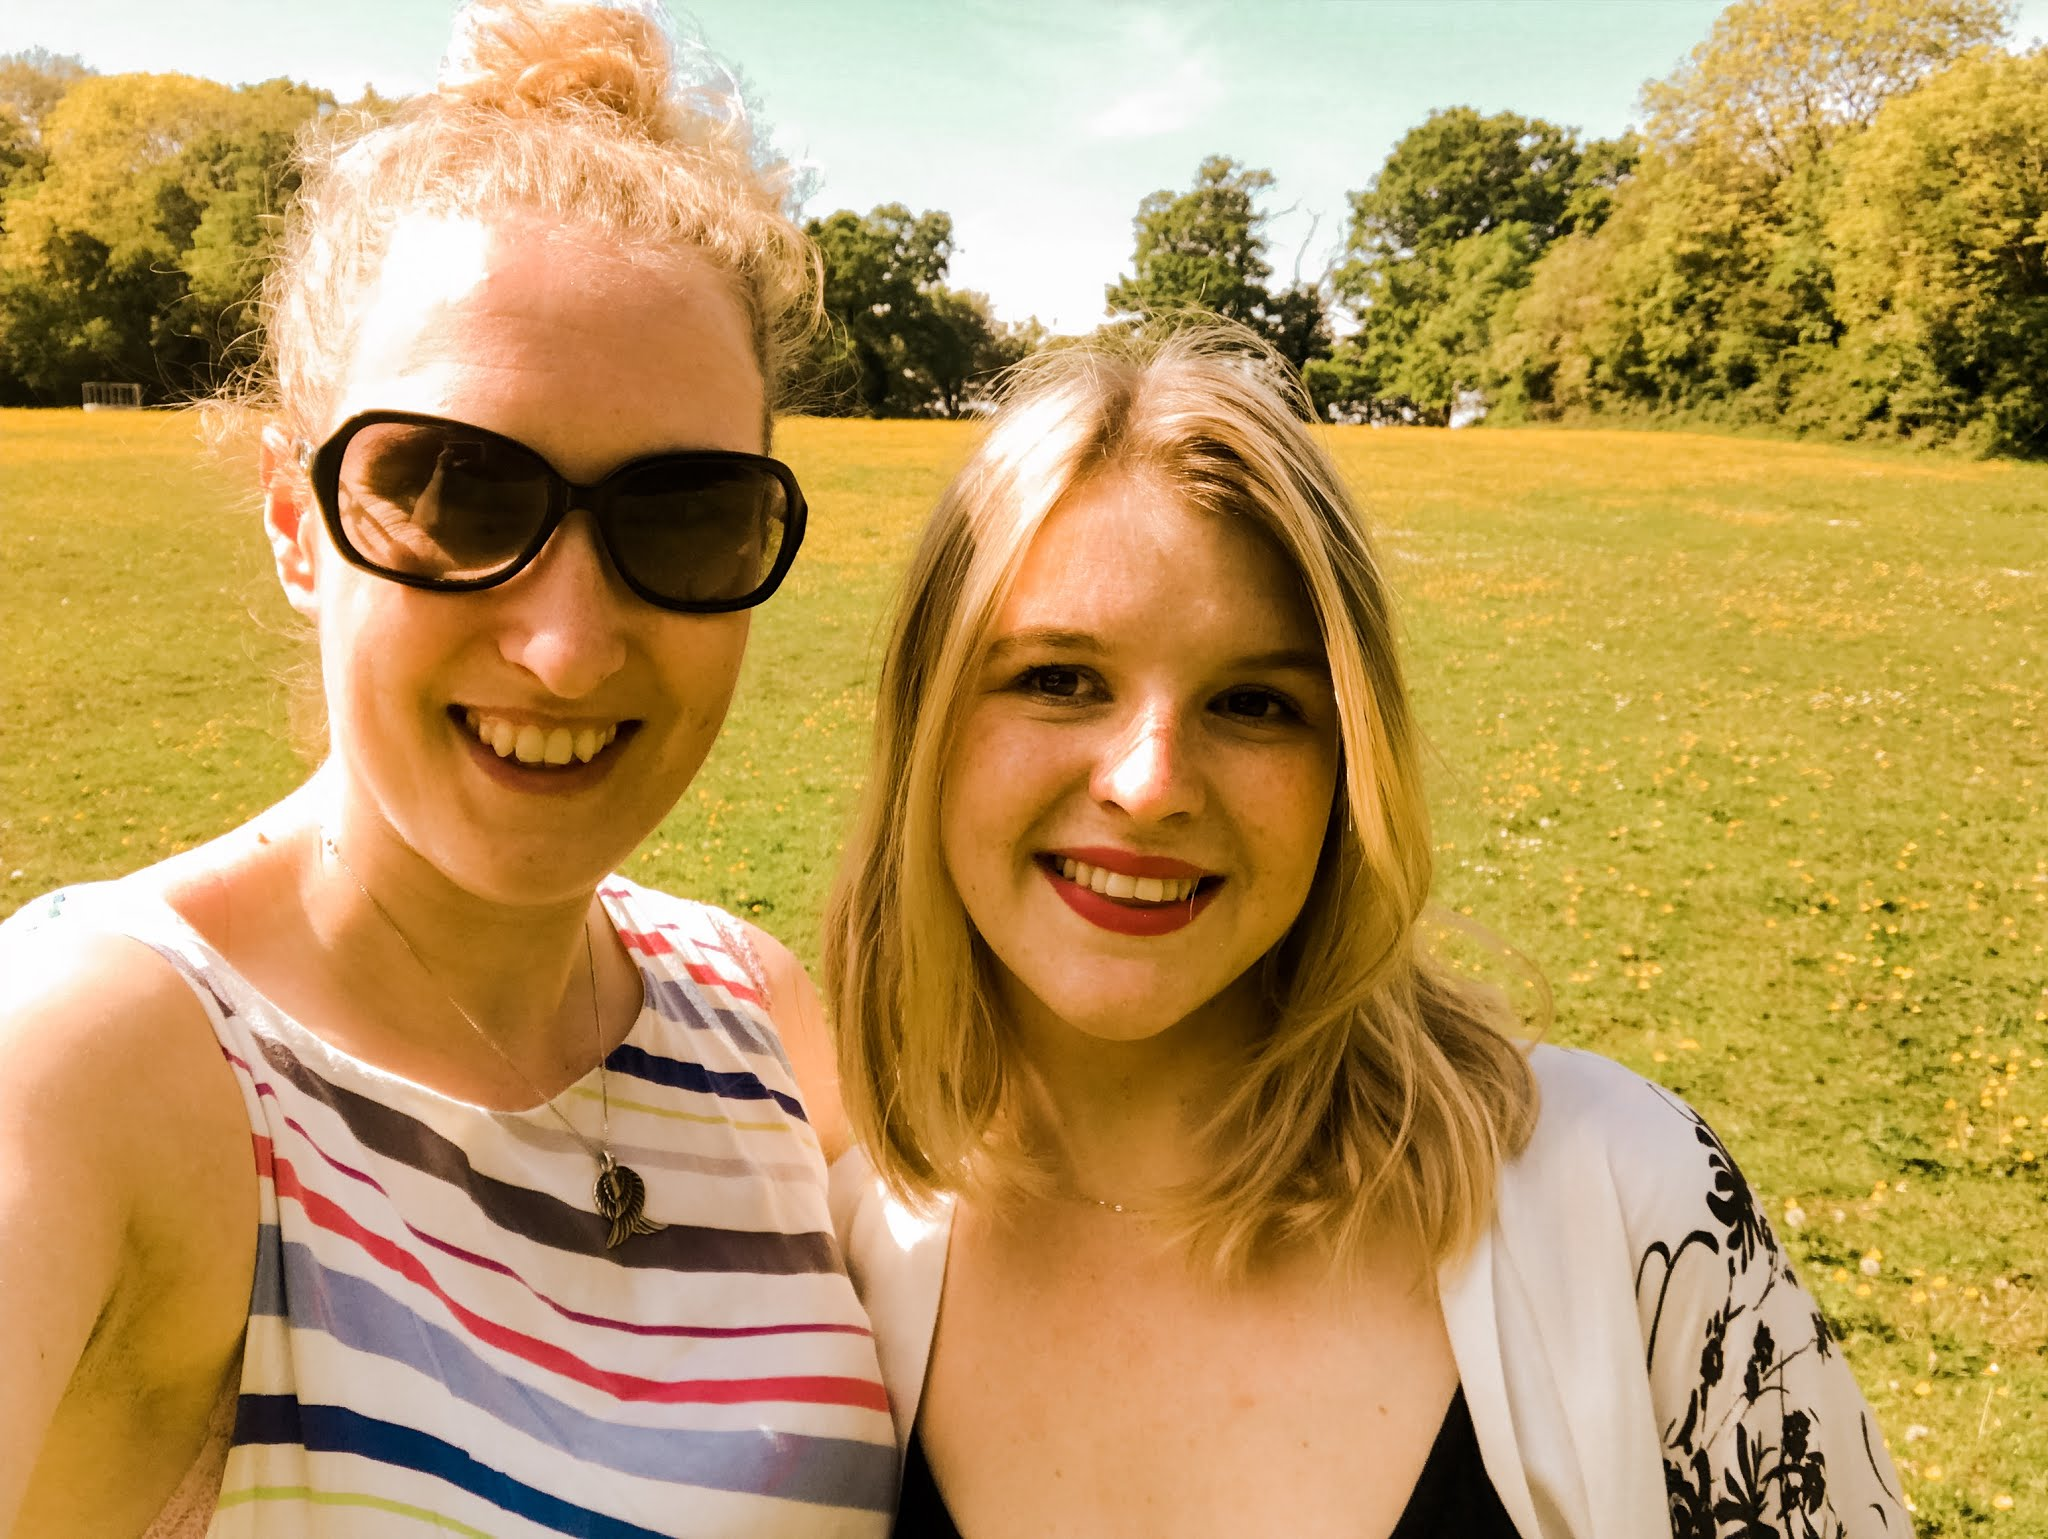 Two friends smiling in a field during Summer 2019